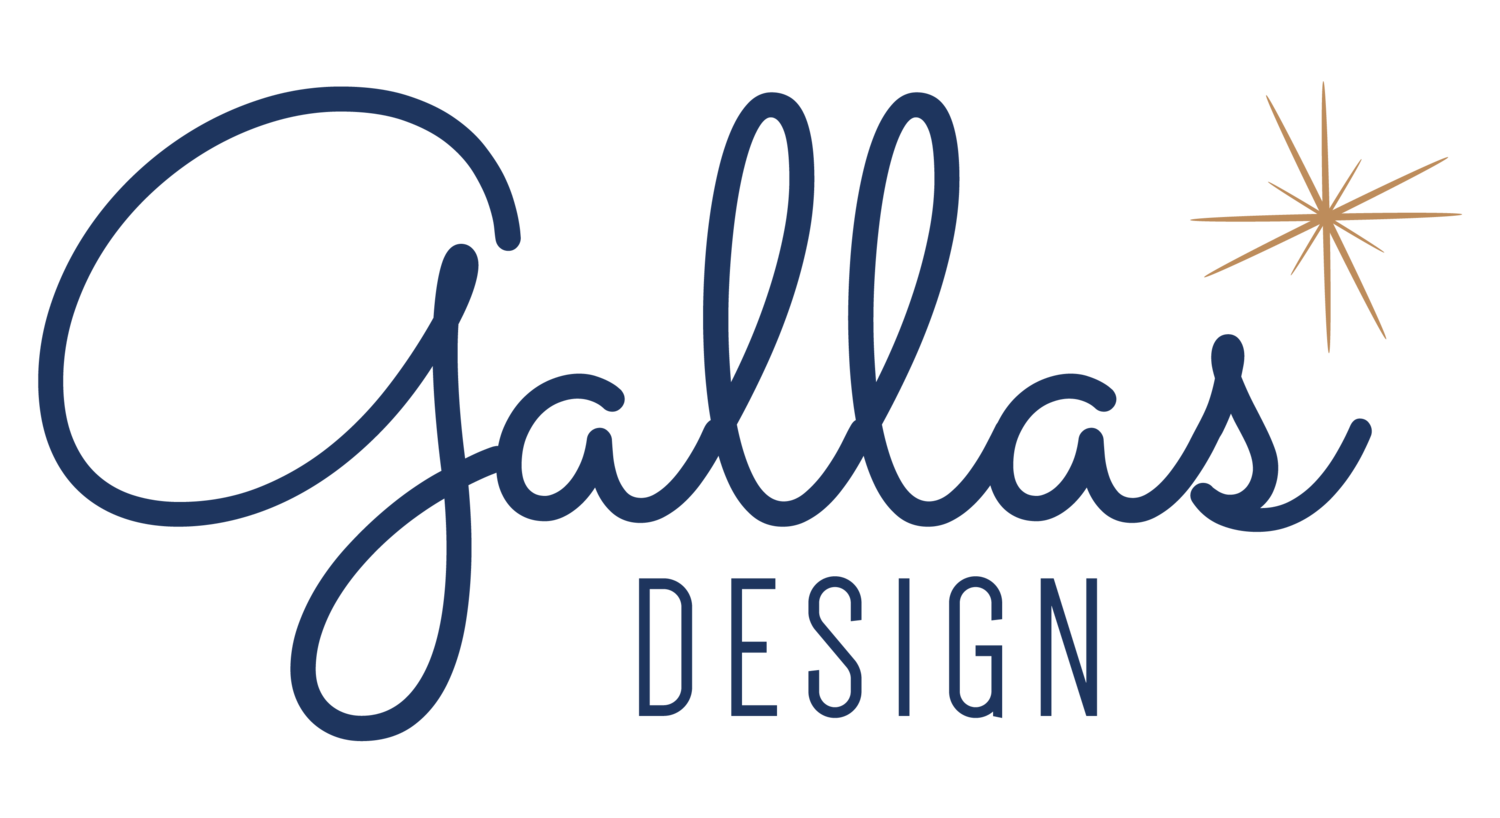 Gallas Design